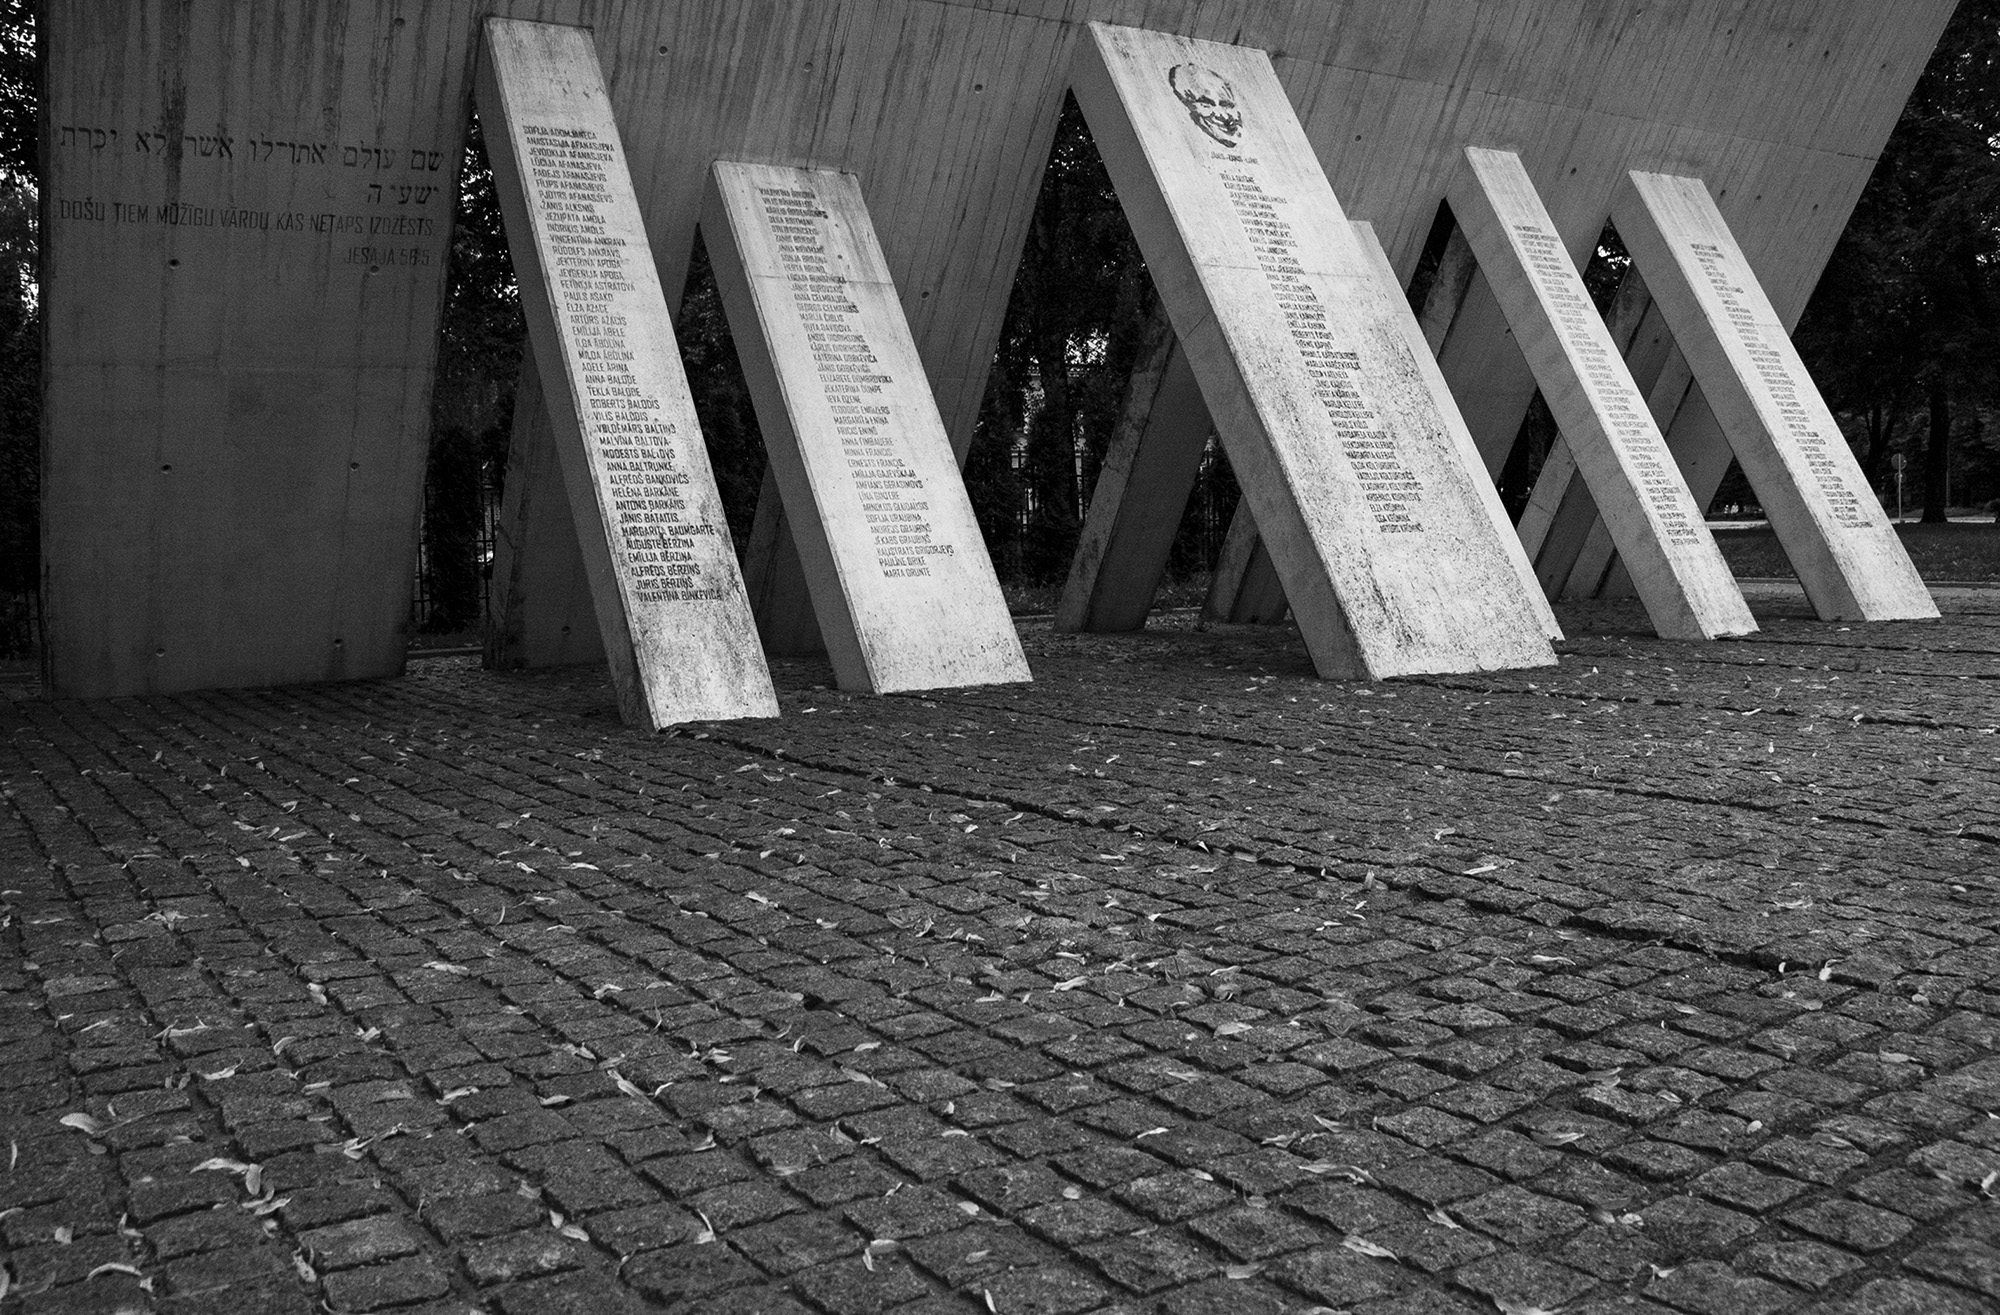 Riga Holocaust Memorial